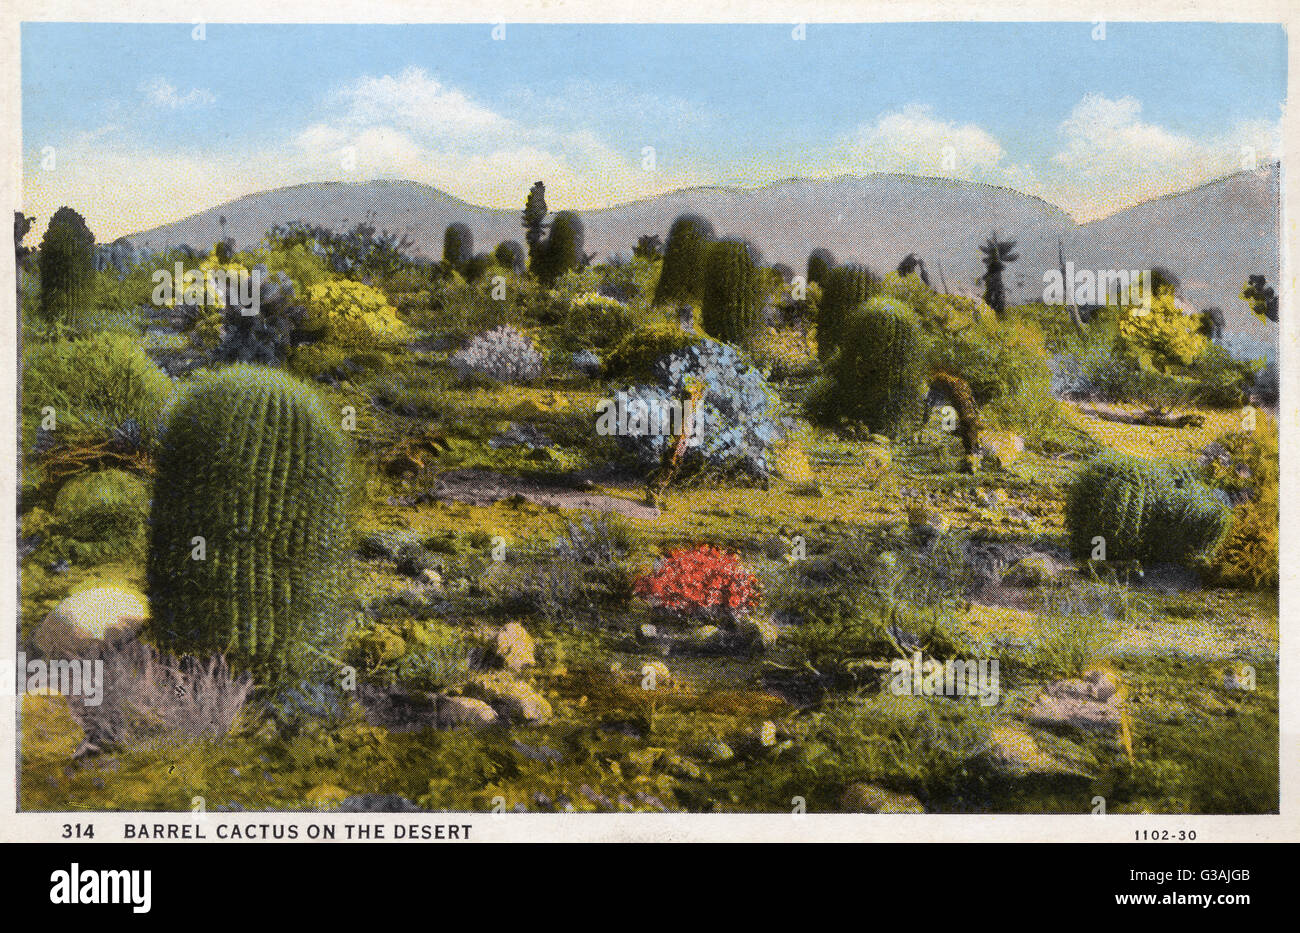 Barrel cactus on the desert - Arizona, USA     Date: circa 1930s - Stock Image